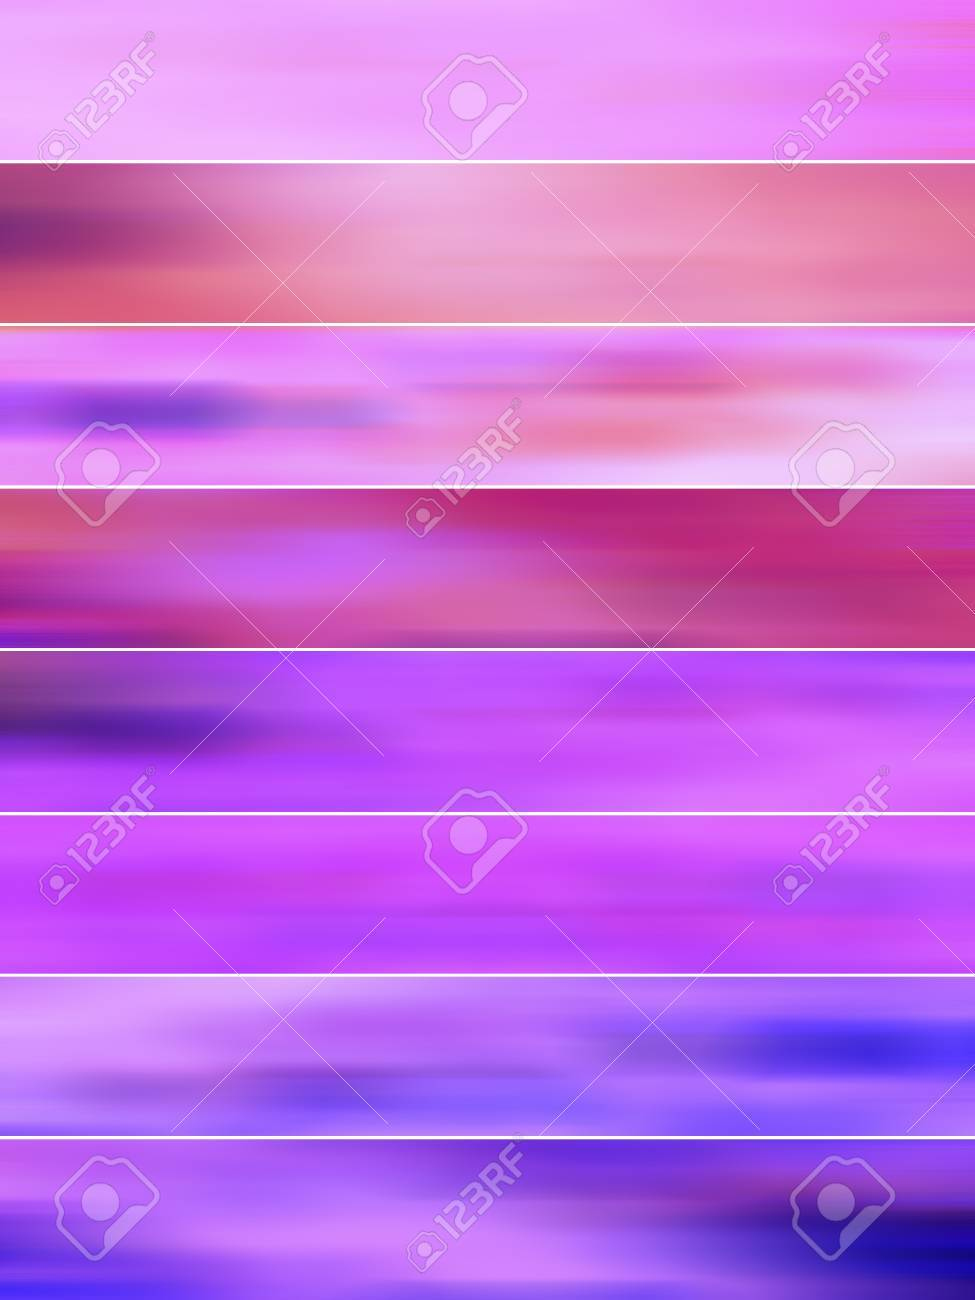 Lovely blueish pinks blurs backgrounds serie for animation Stock Photo - 11988945